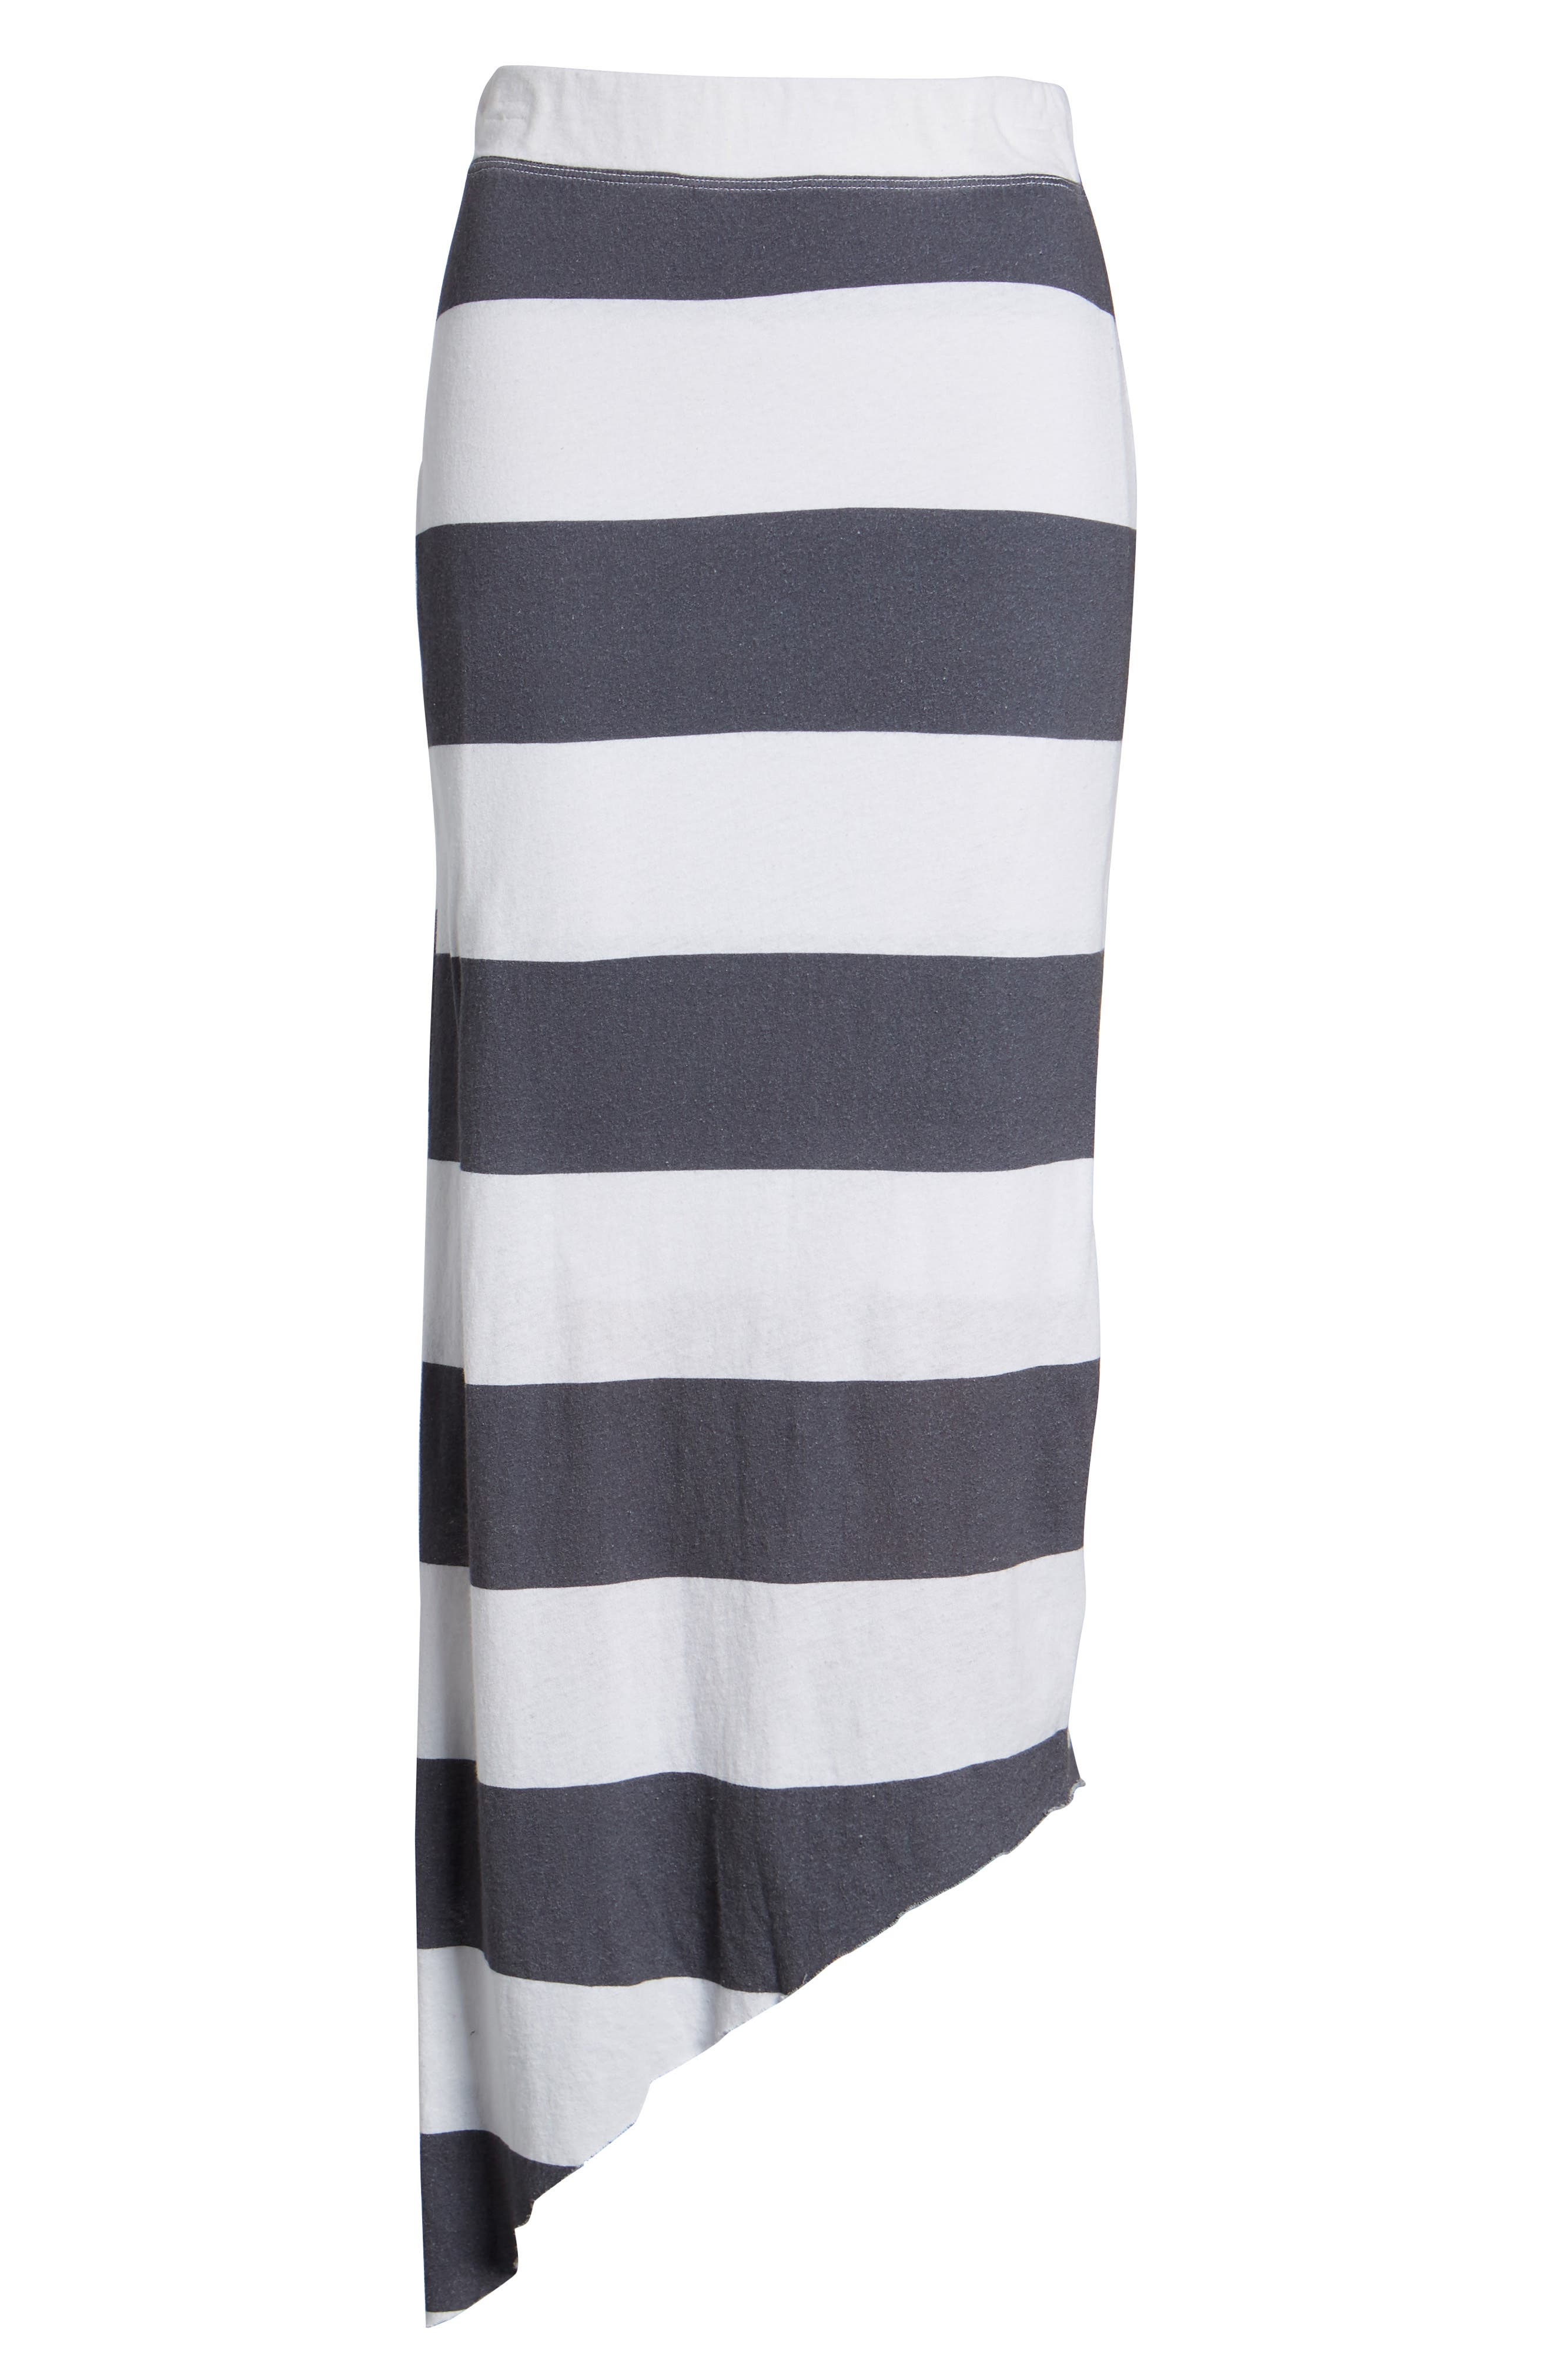 Stripe Asymmetrical Skirt,                             Alternate thumbnail 6, color,                             Carbon Rugby